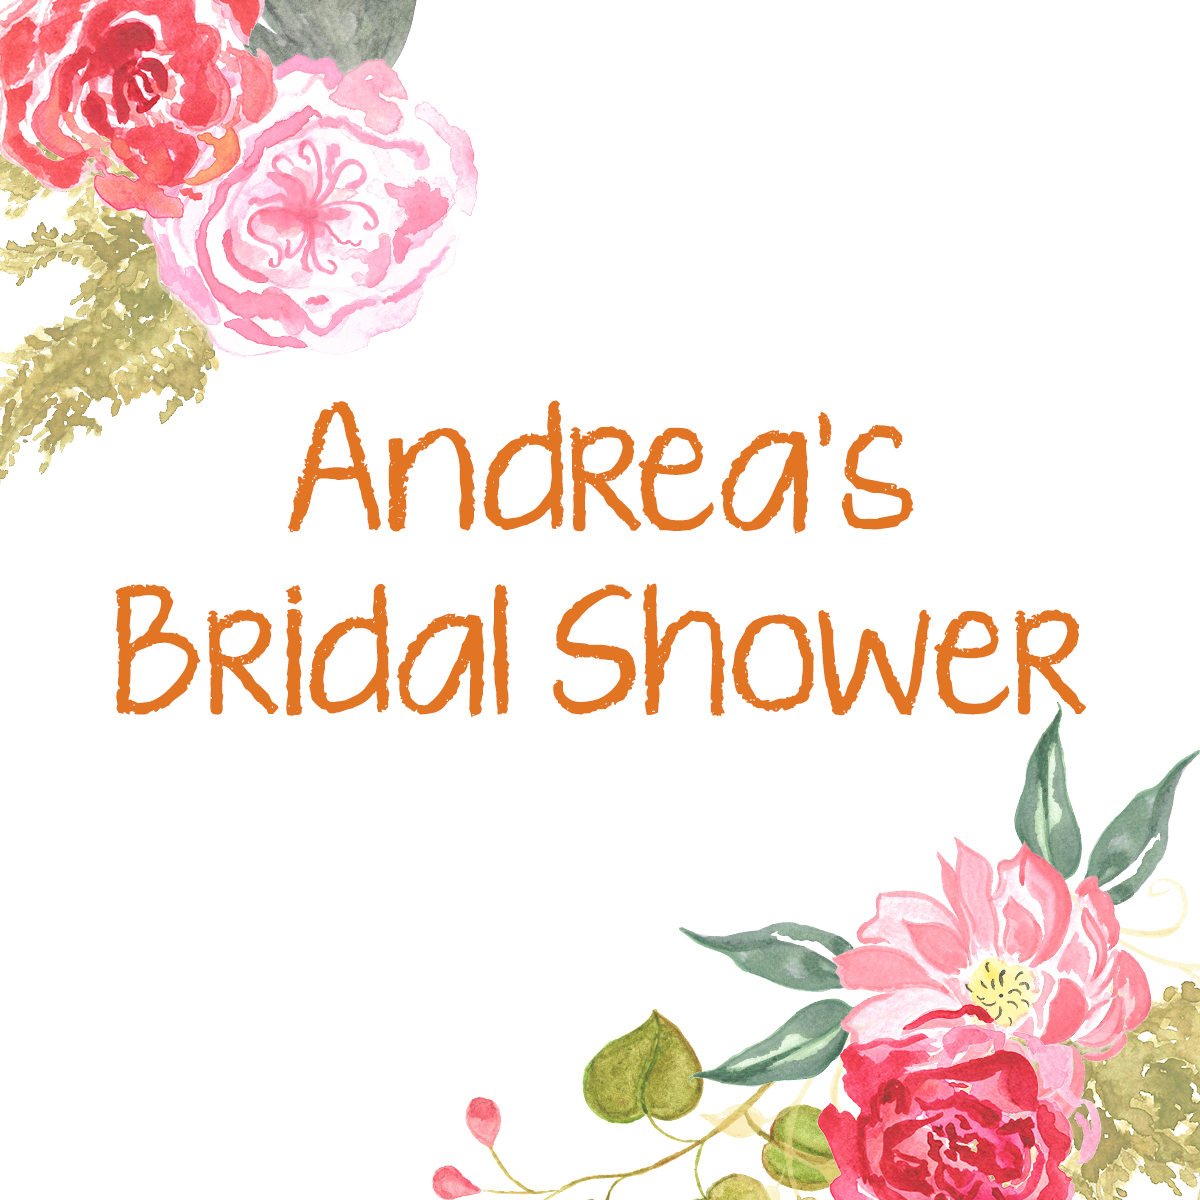 Andrea's Bridal Shower.png